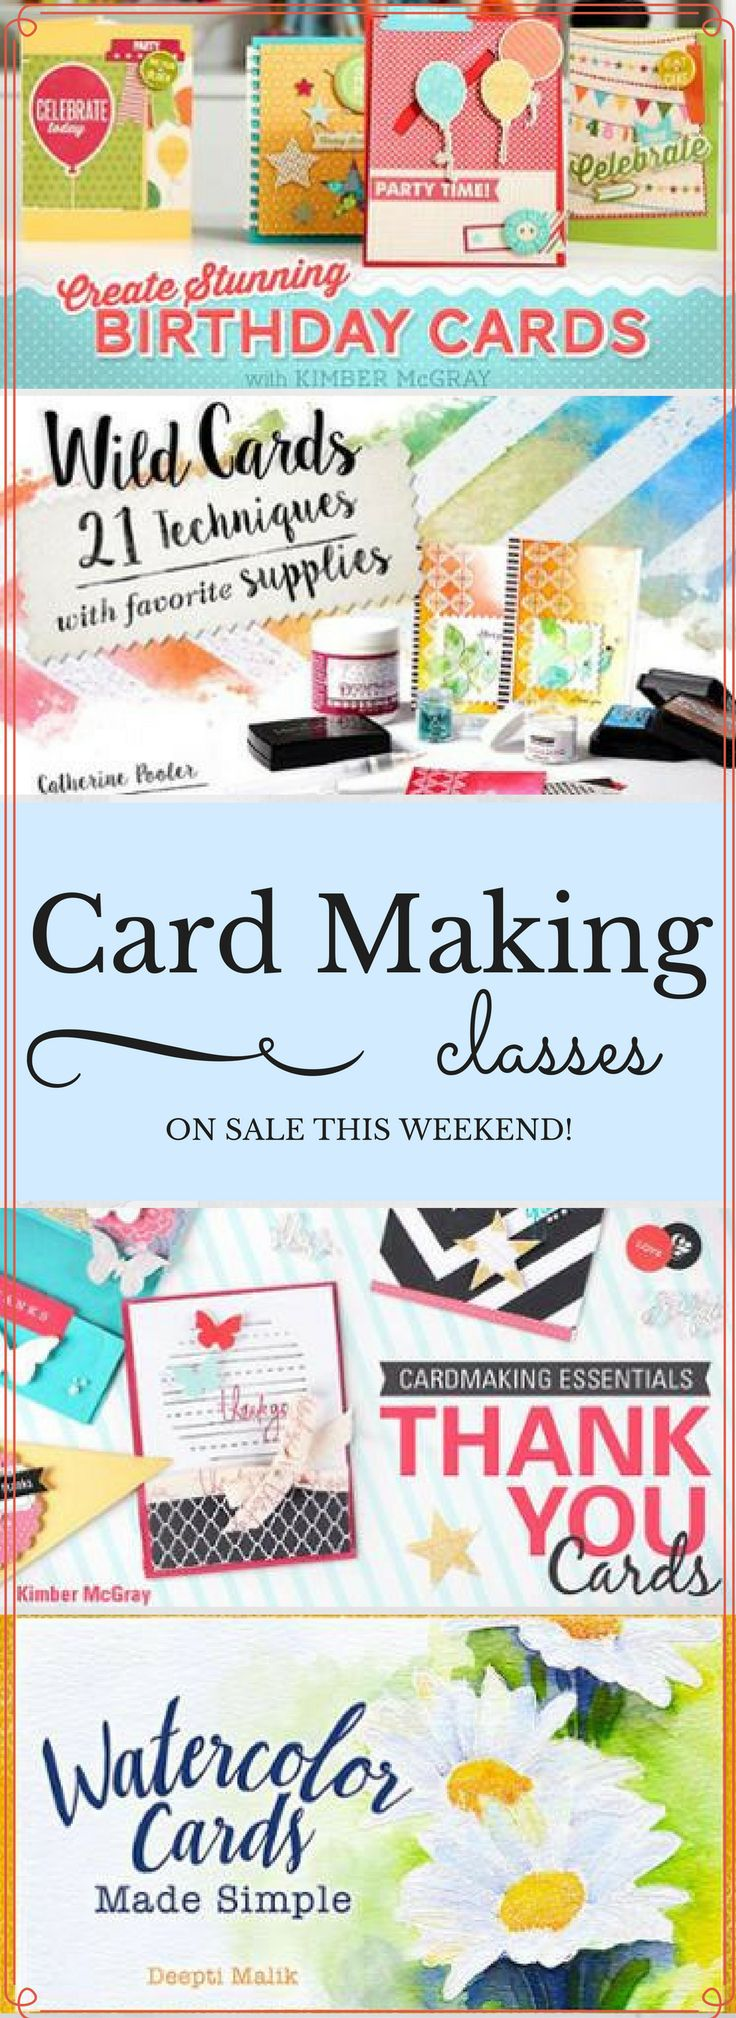 23 Best Online Card Making Classes Images On Pinterest Tag Art